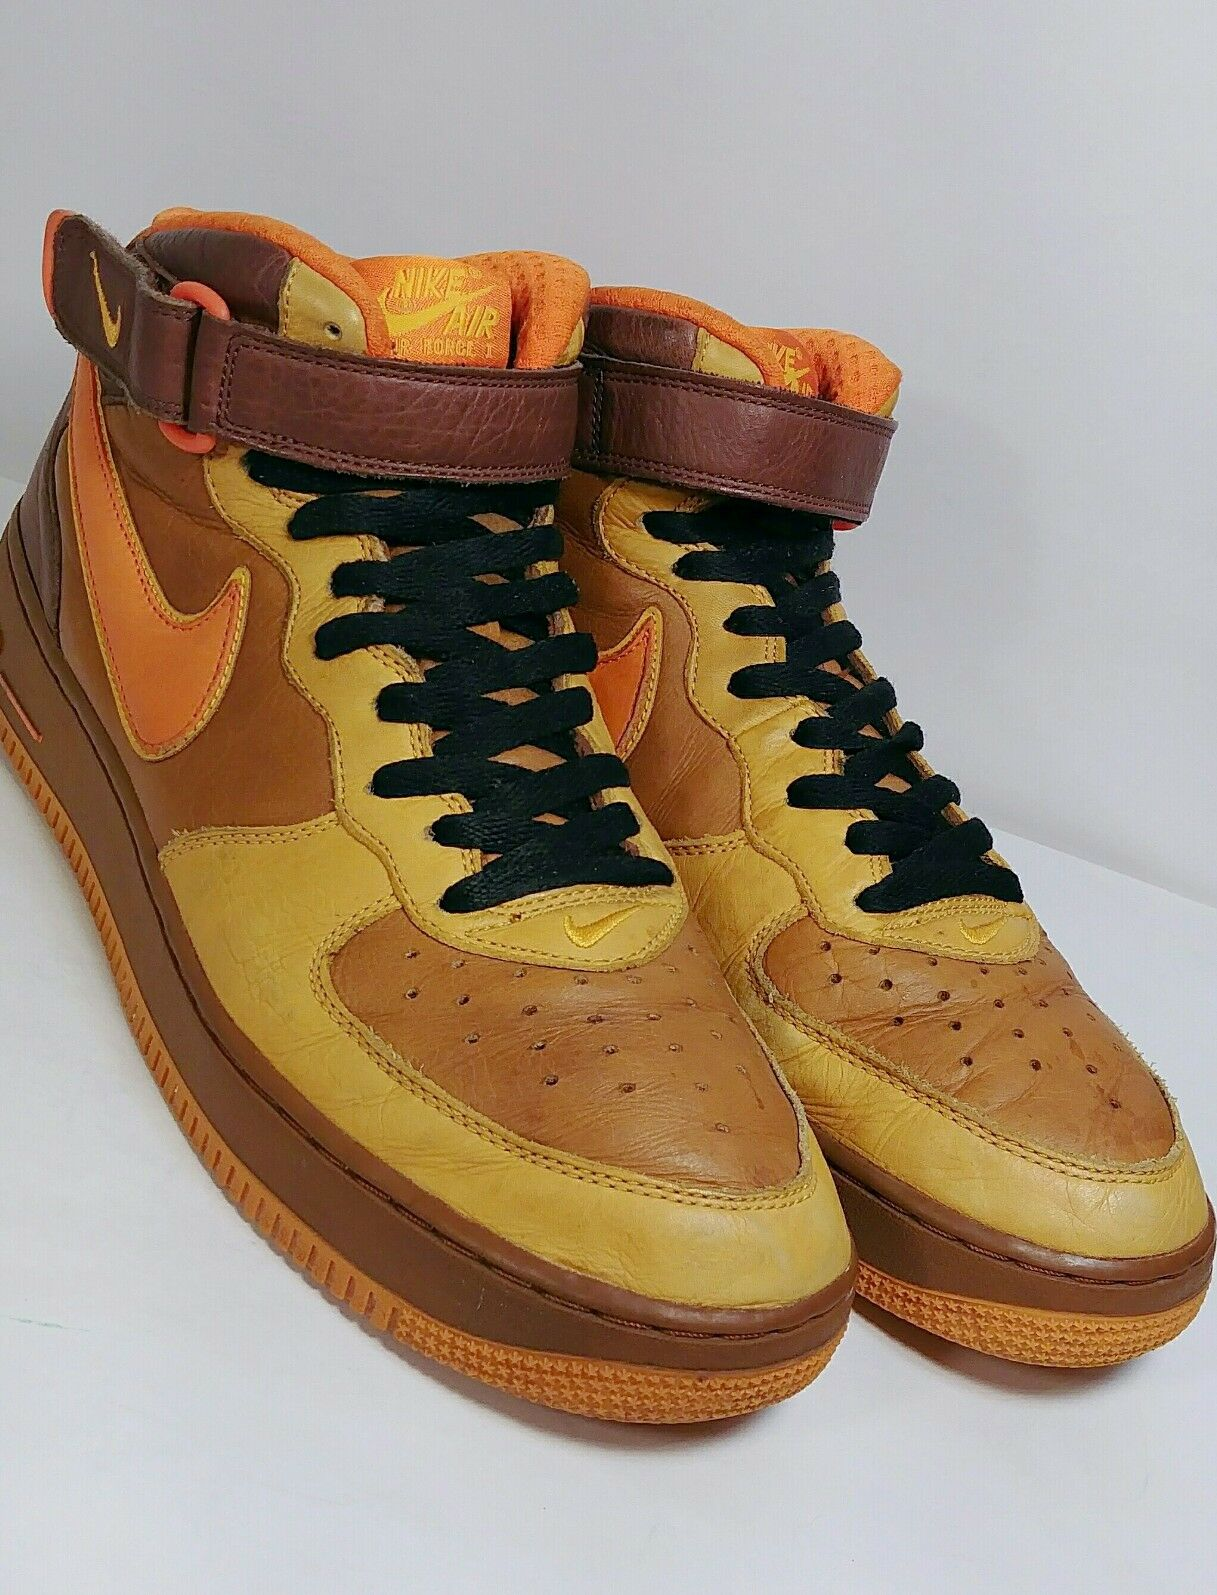 Nike Air Force 1 Orange Mid Premium QK Hazelnut/ Orange 1 Blaze 315581-281 Size 11.5 EUC 838f66